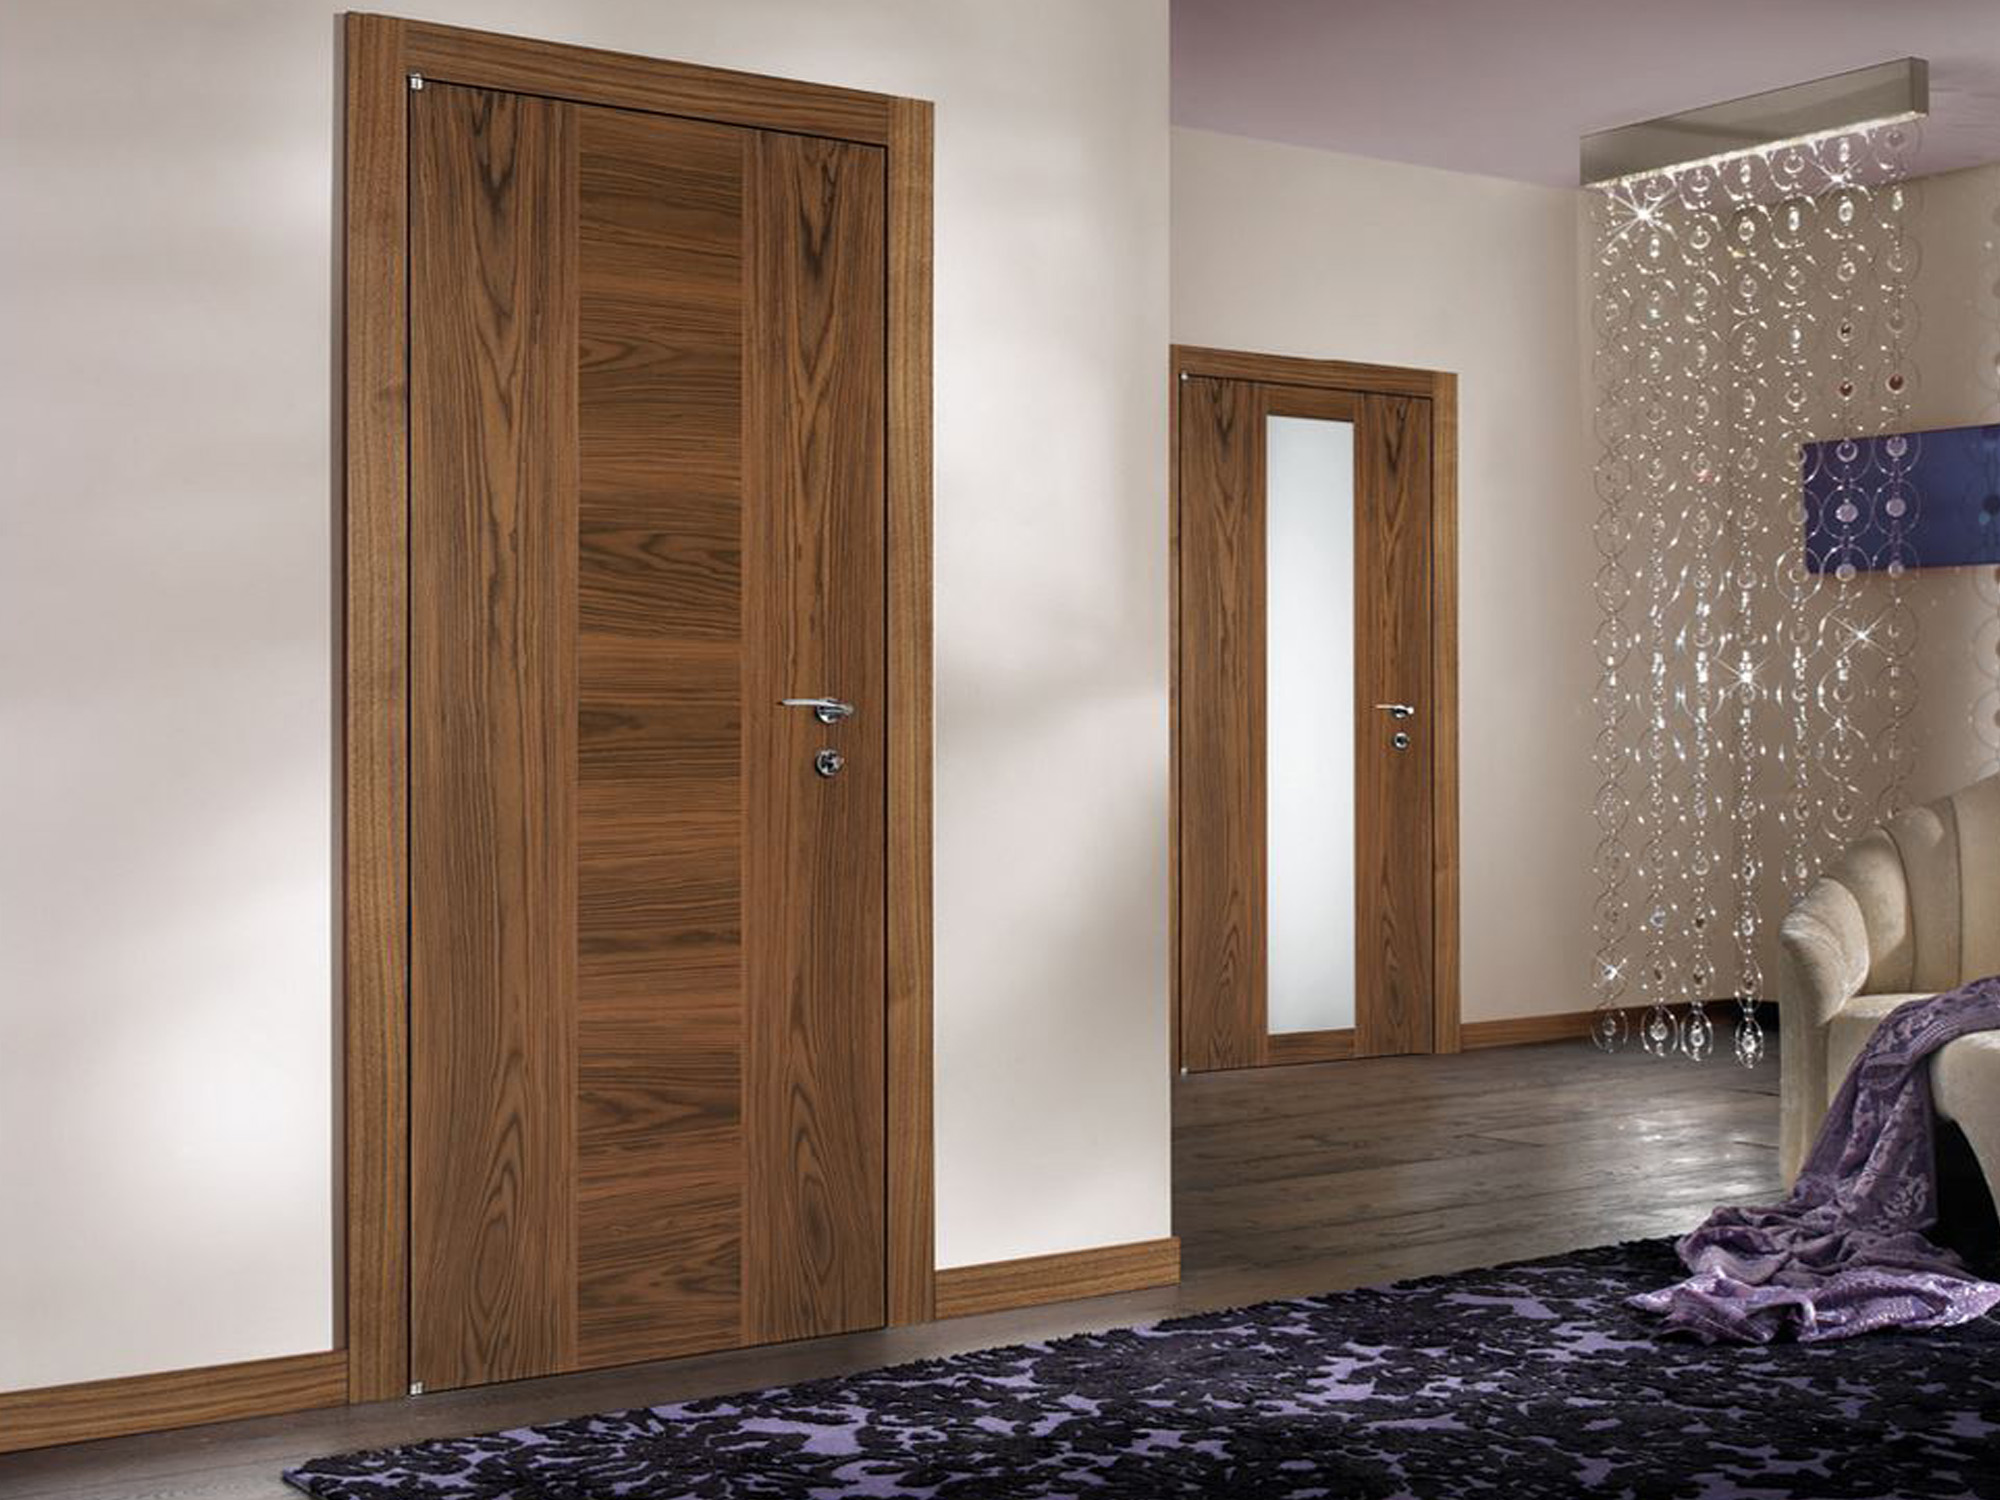 Custom made Wood Internal Doors | Modern Flush Walnut Wood Interior doors made by Zakuna Sussex UK & Custom made Wood Internal Doors | Modern Flush Walnut Wood Interior ...